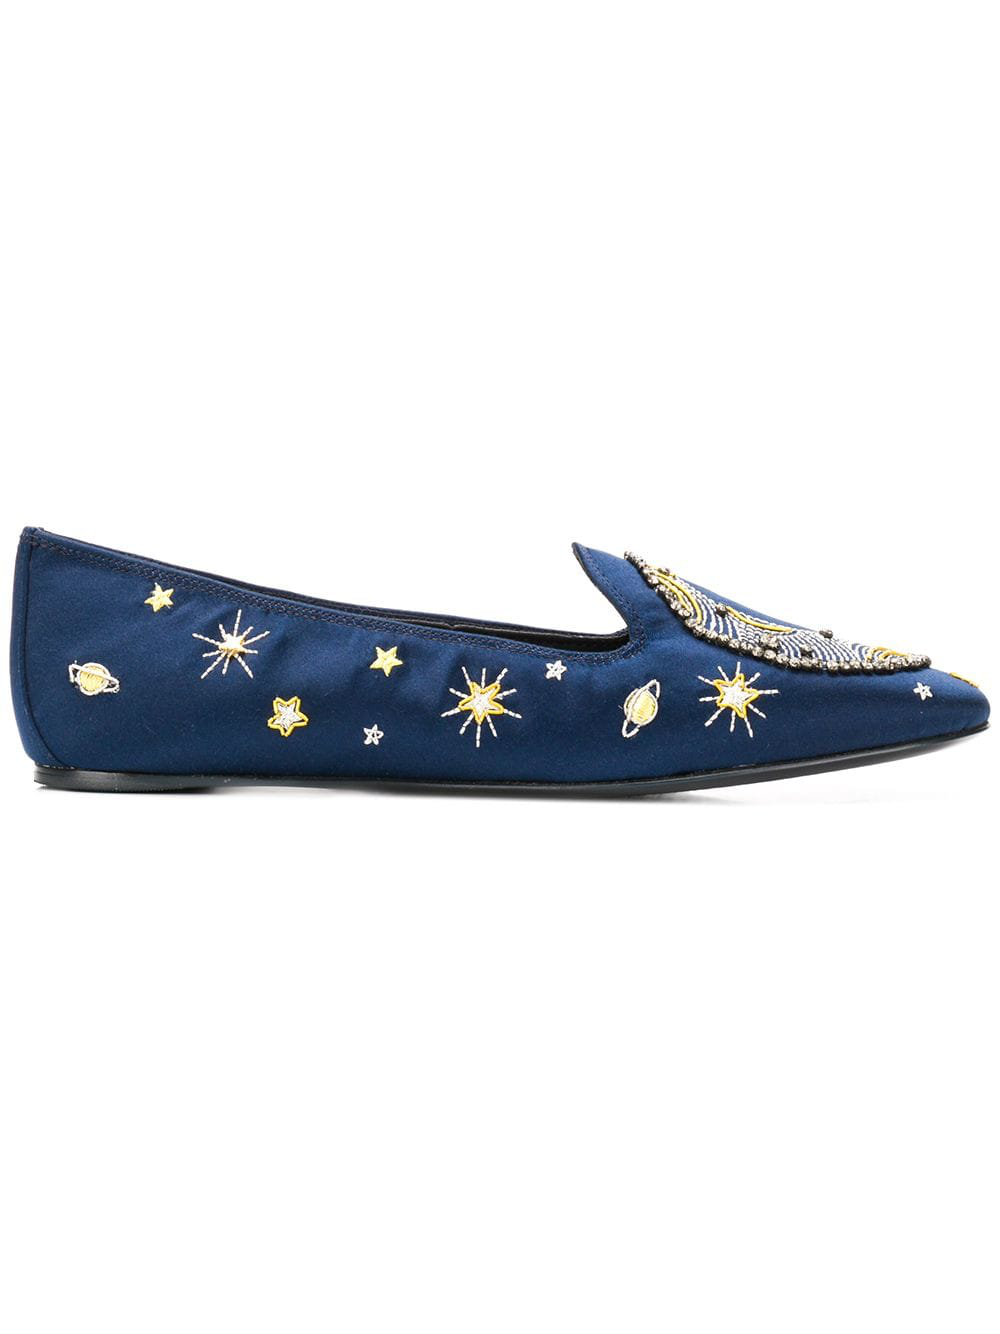 41dff6331e7 Tory Burch Olympia Embroidered Loafer